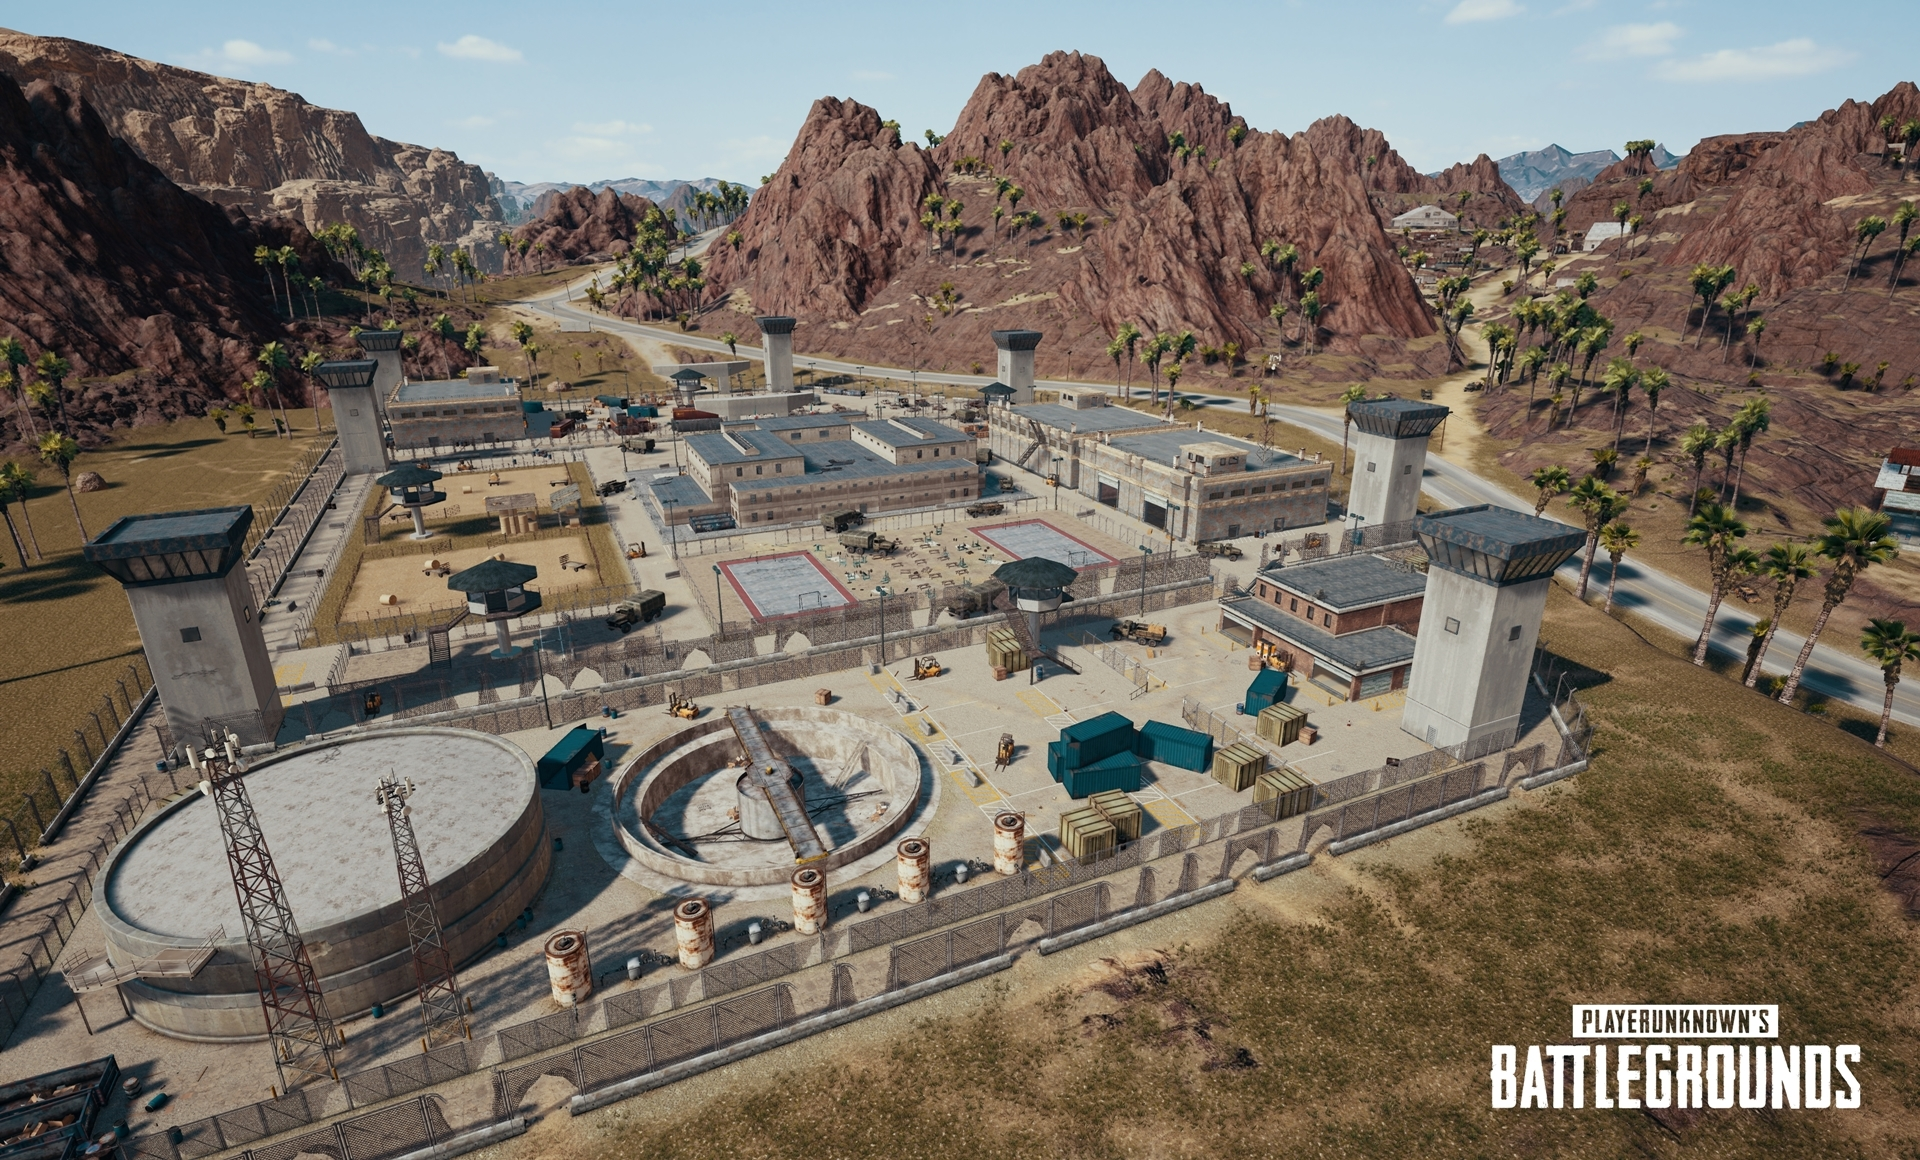 Photo of PUBG Update #4 is now available, includes Miramar changes and new anti-cheat measures